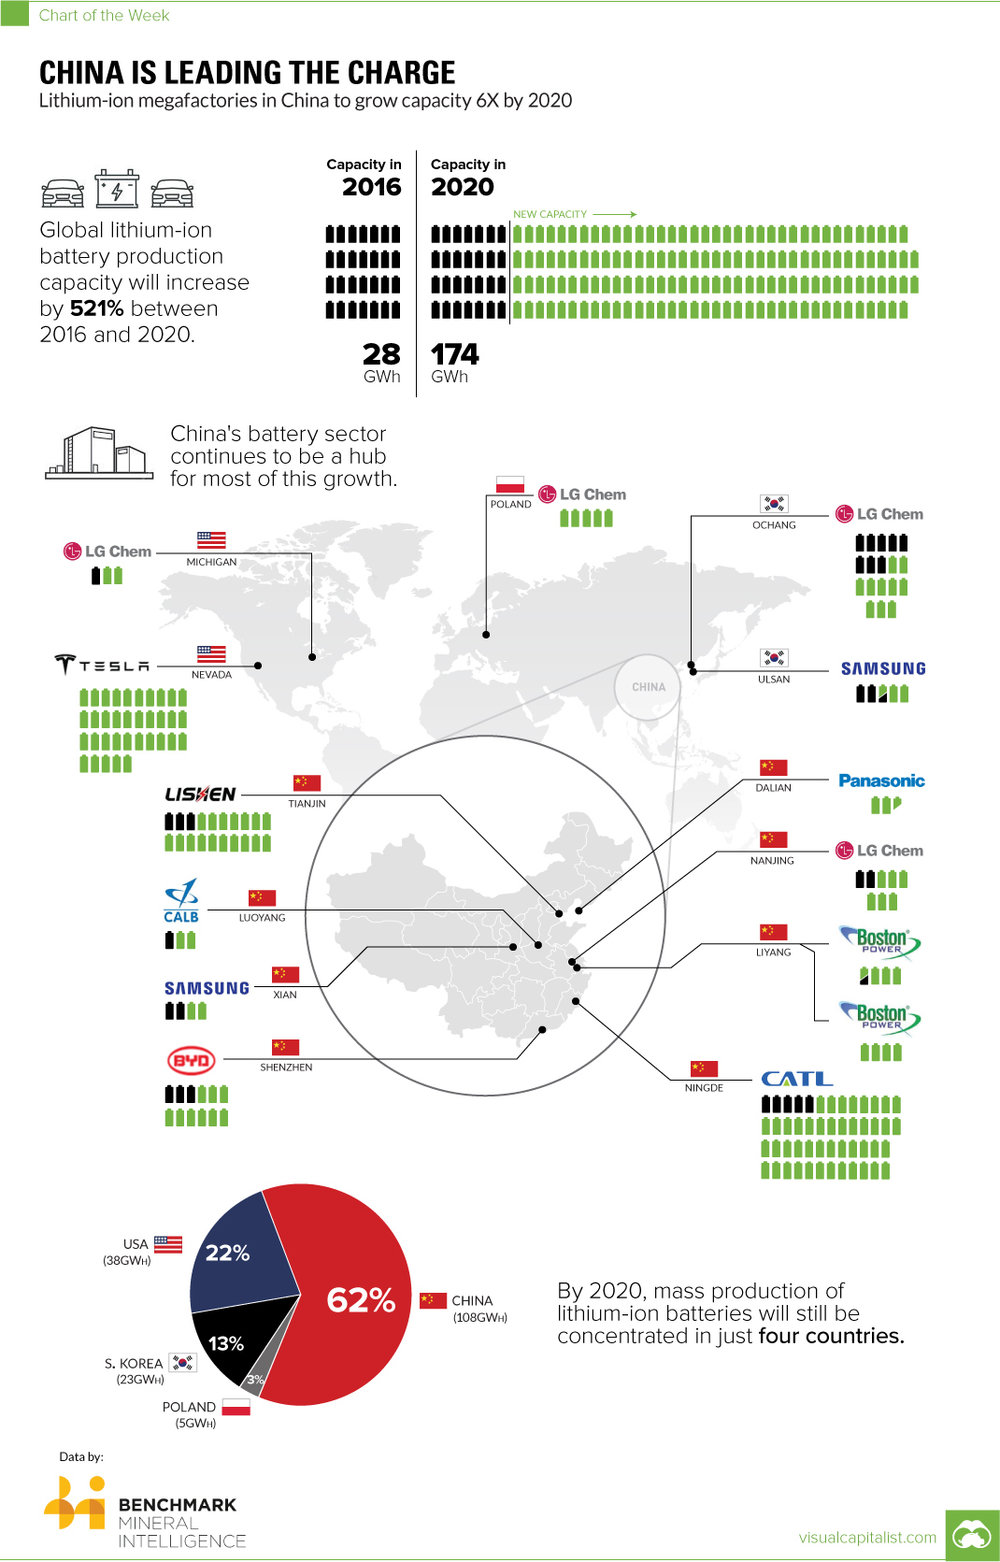 Figure 2: Overview installed or planned battery production capacities around the globe (source: visualcapitalists.com)